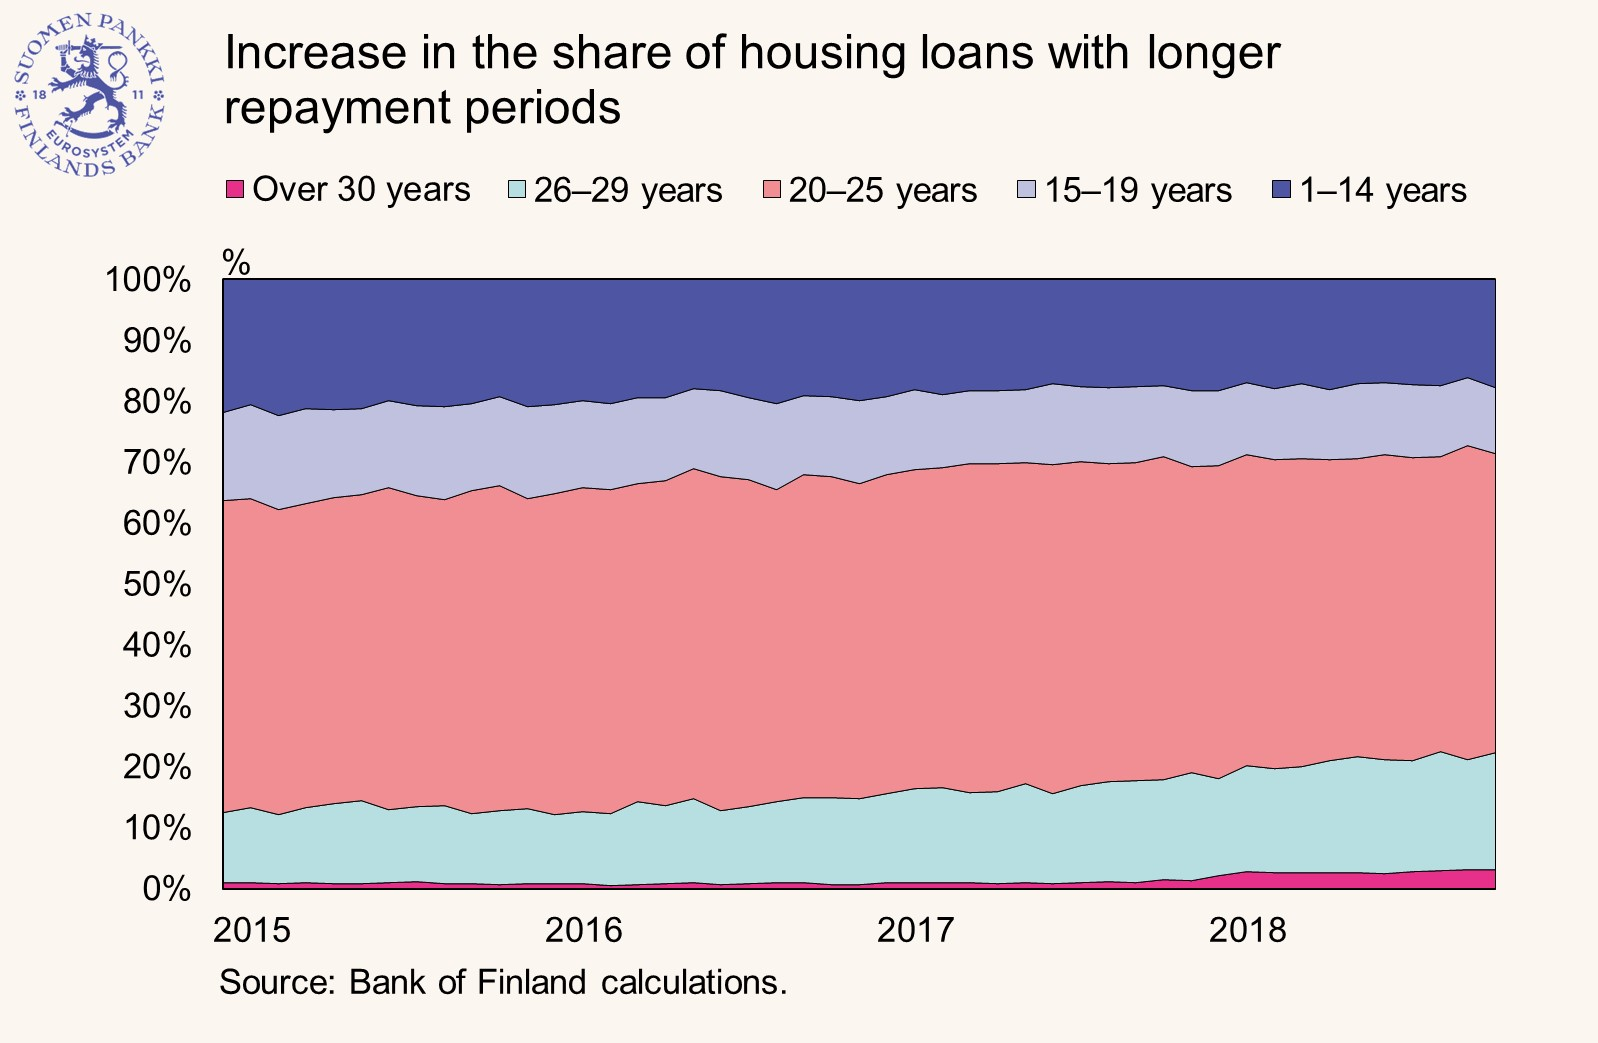 Increase in the share of housing loans with longer repayment periods